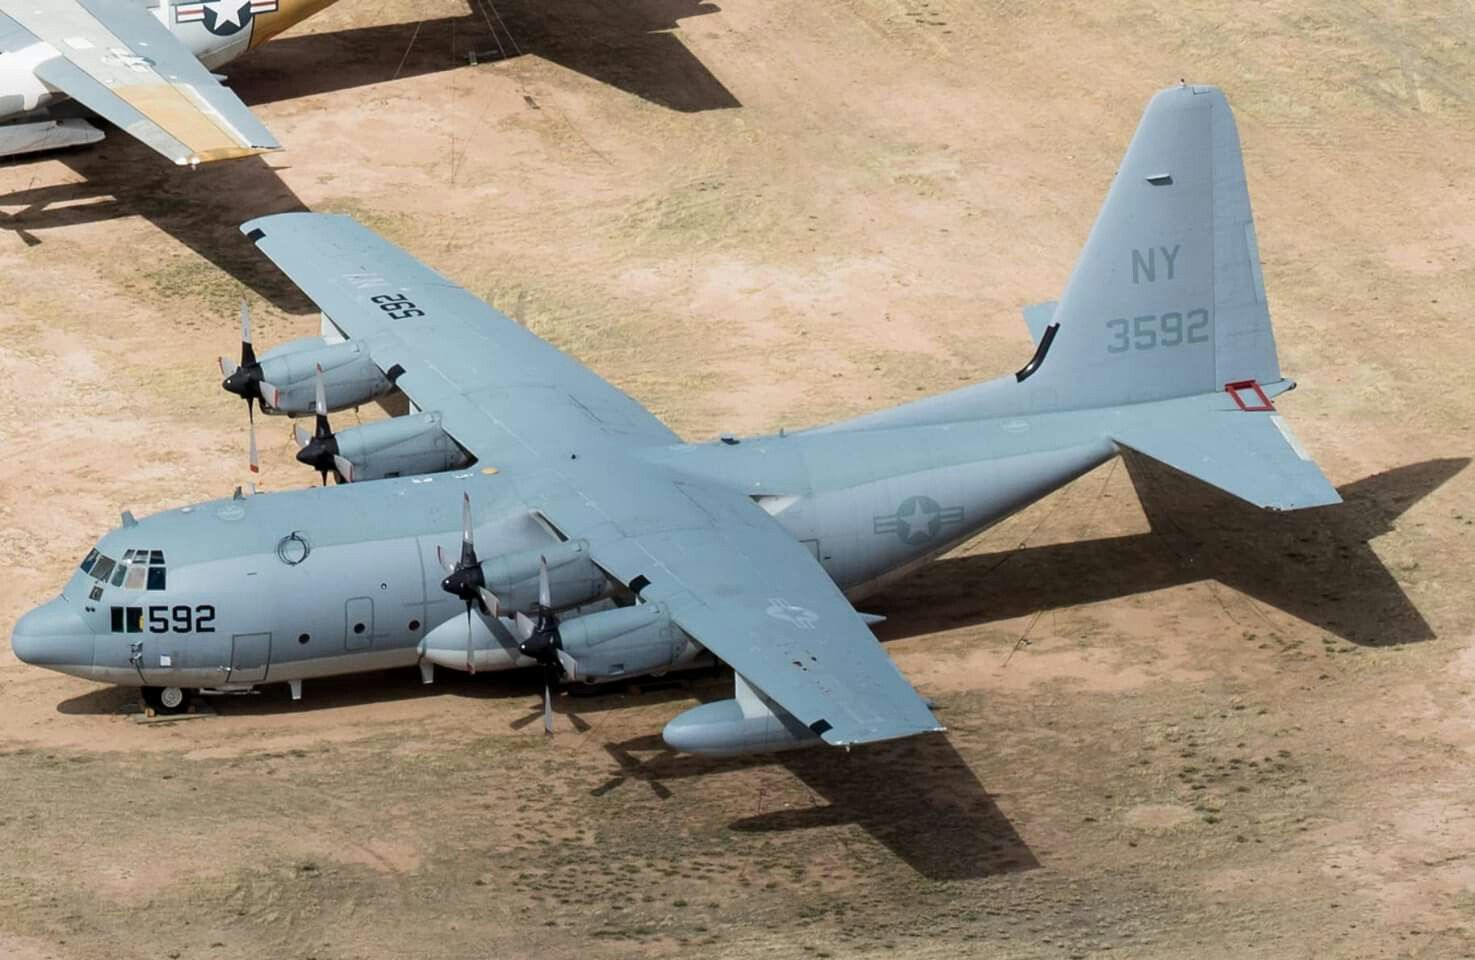 Pin by rambler on Cargo and Tanker Aircraft in 2020 C130